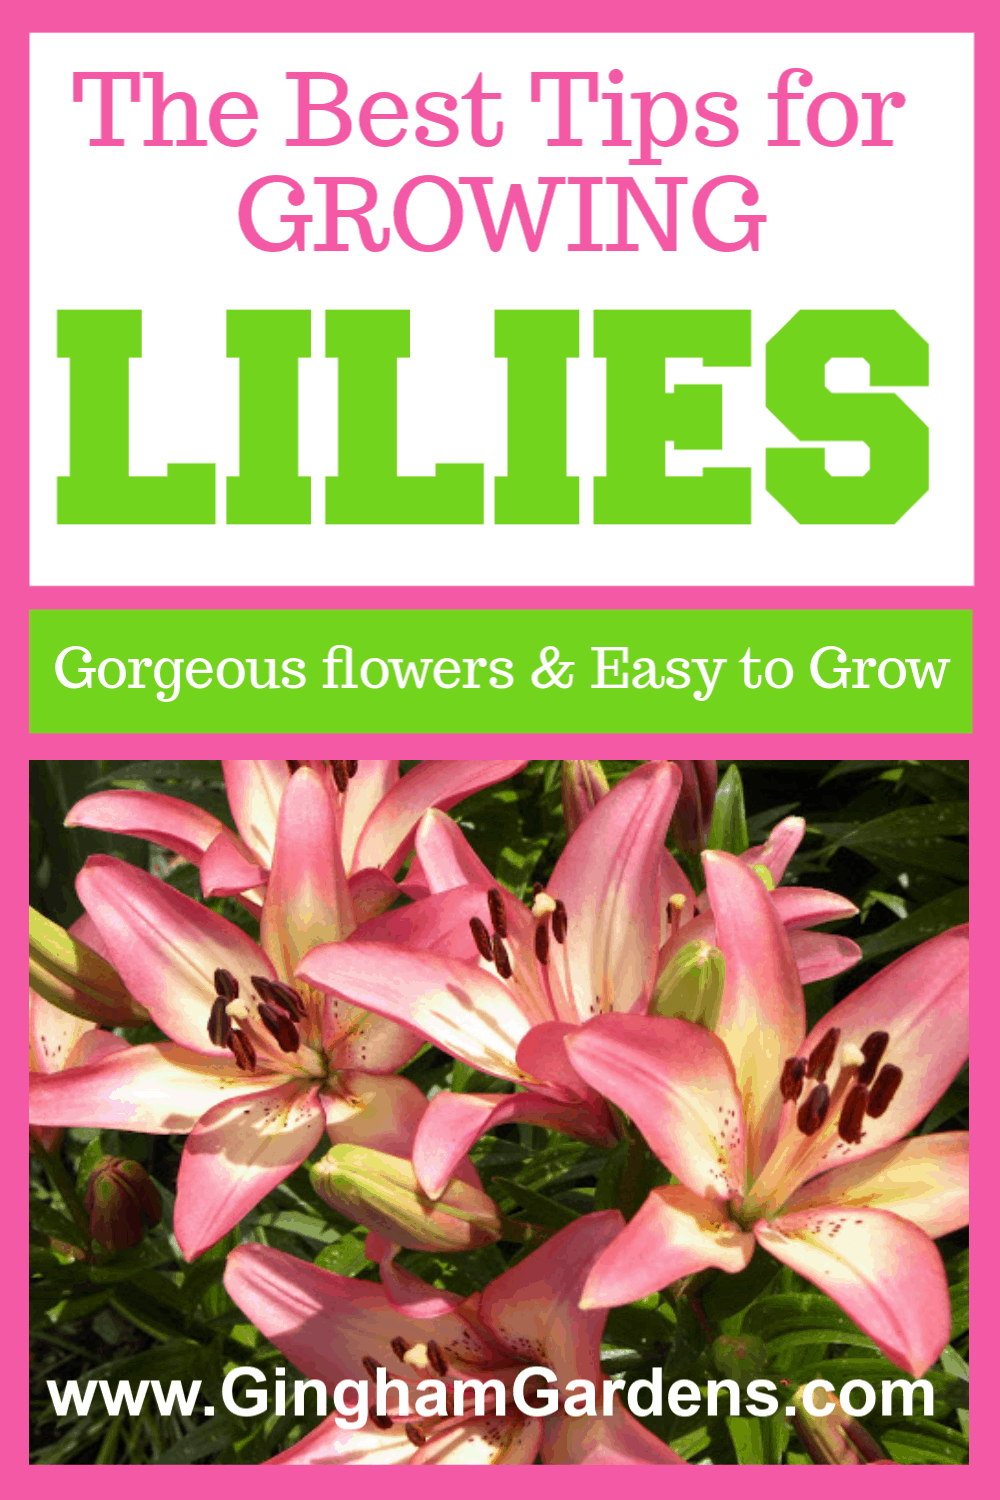 Image of Lilies with text overlay - The Best Tips for Growing Lilies